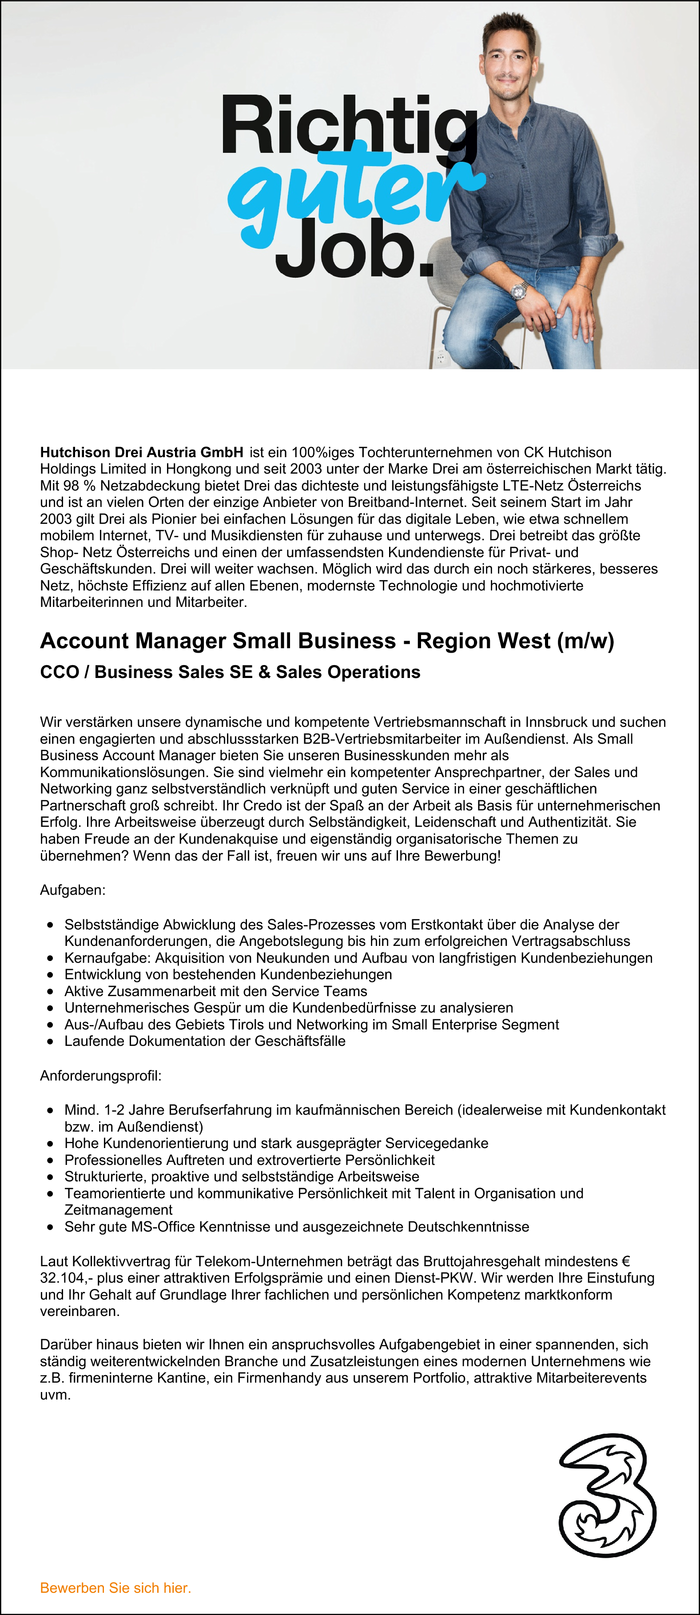 Account Manager Small Business - Region West (m/w)